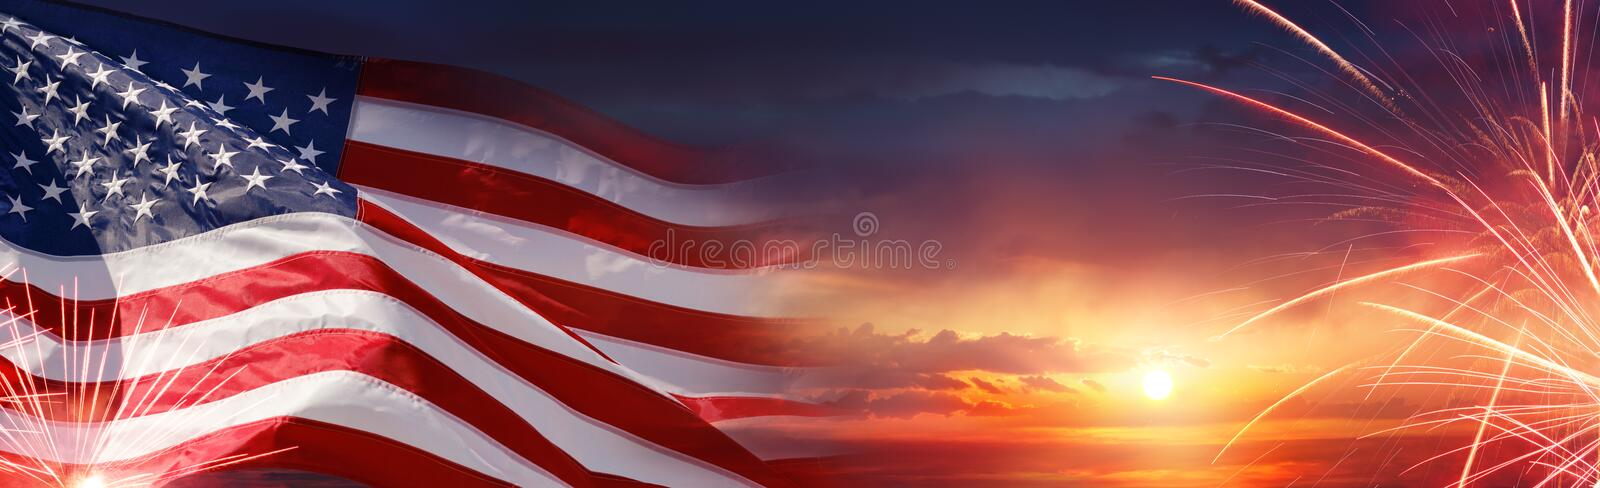 Download American Celebration - Usa Flag And Fireworks Stock Image - Image of veterans, stripes: 93999709